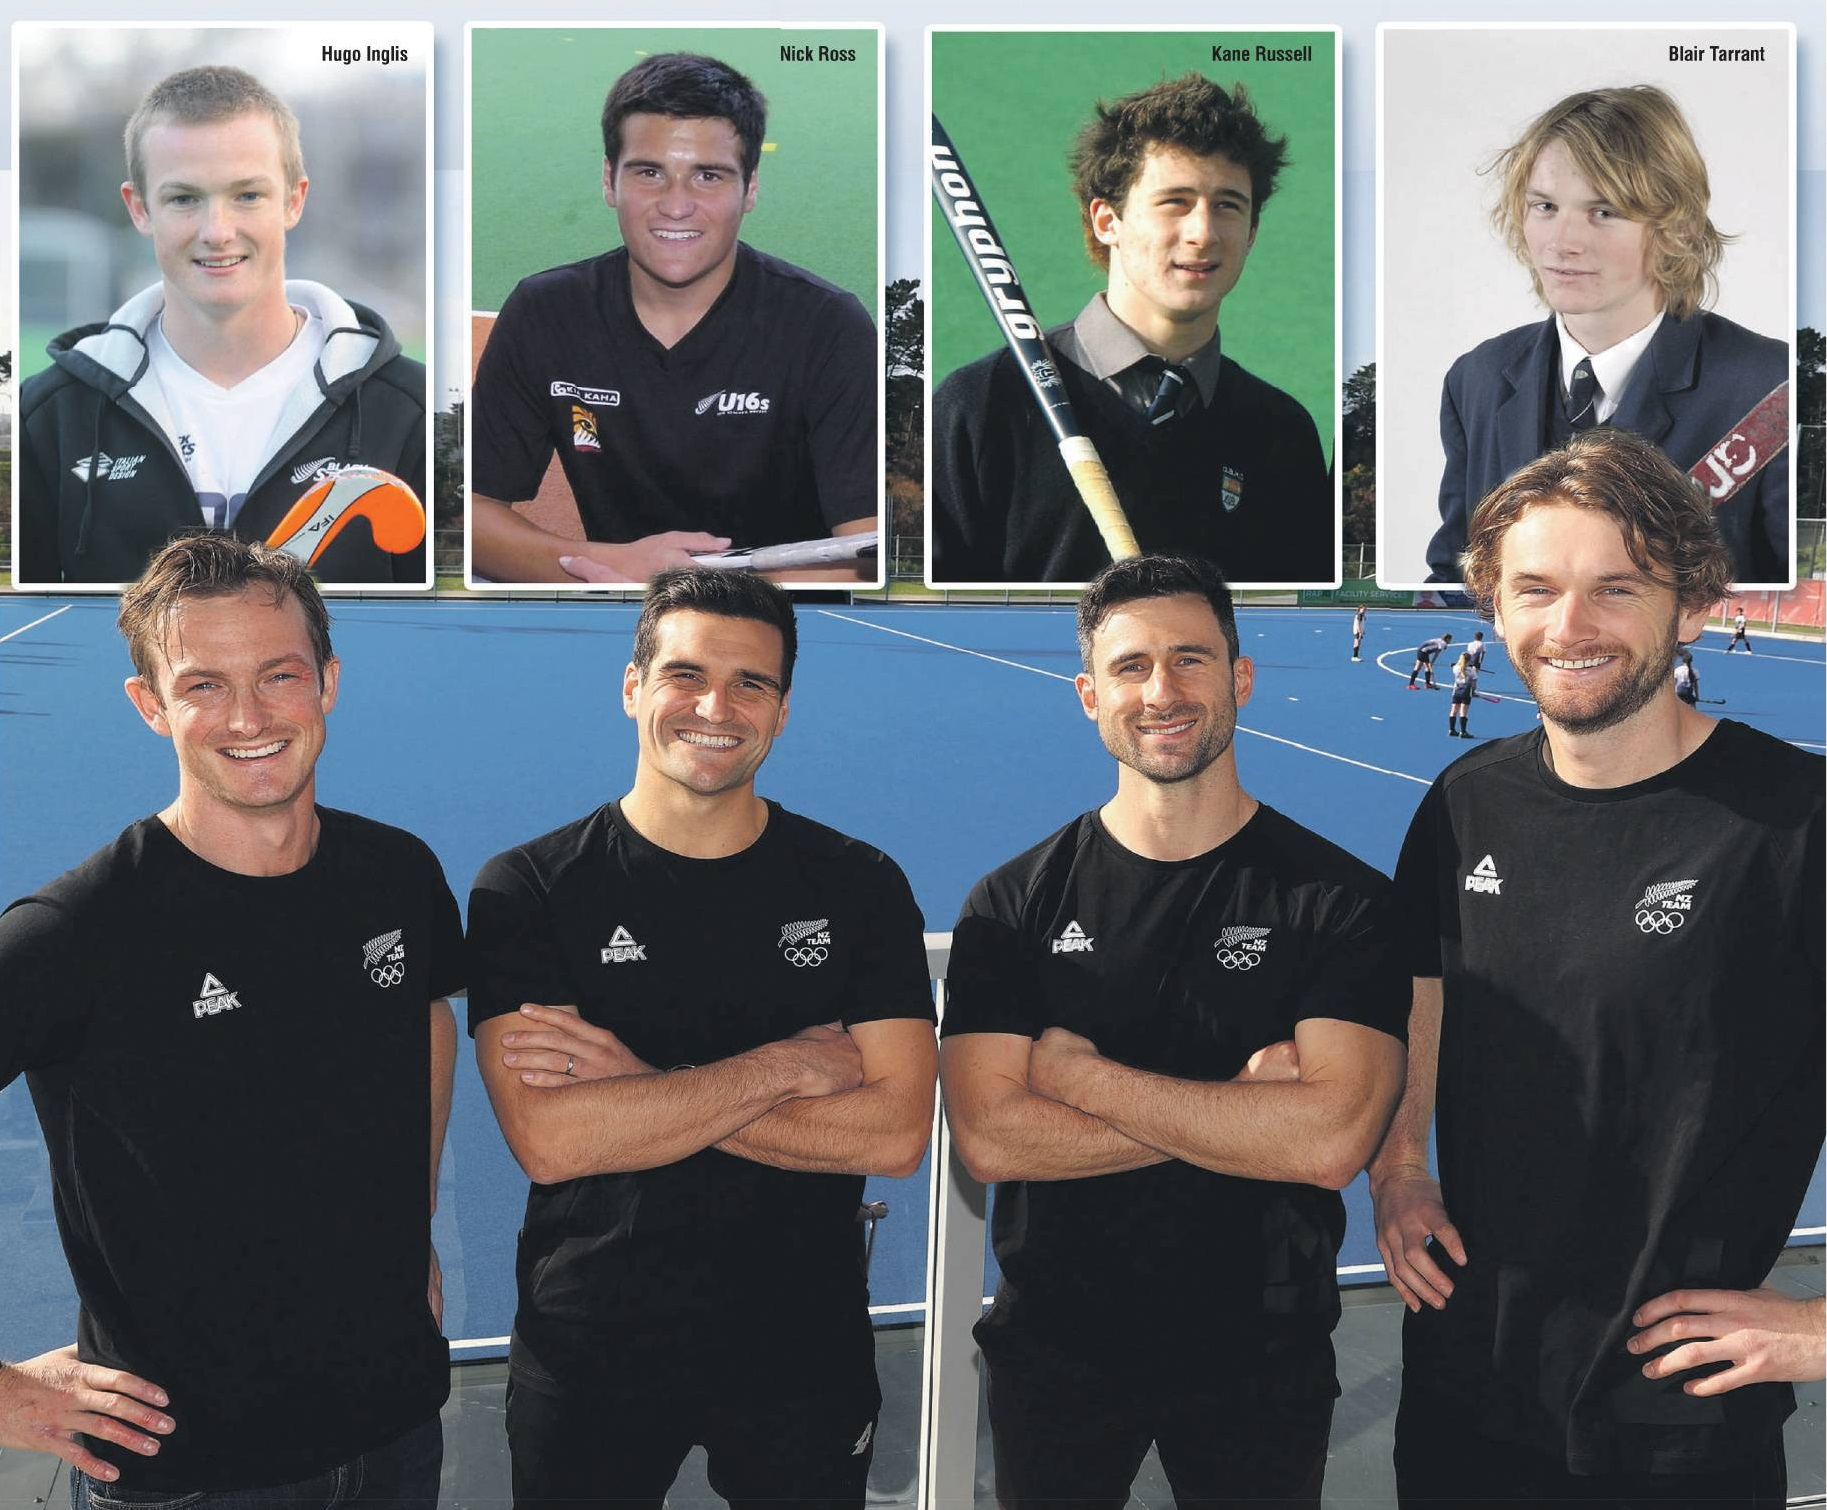 Hugo Inglis, Nick Ross, Kane Russell and Blair Tarrant in Auckland yesterday after being named in the Black Stick Olympics squad. Photo: Getty Images